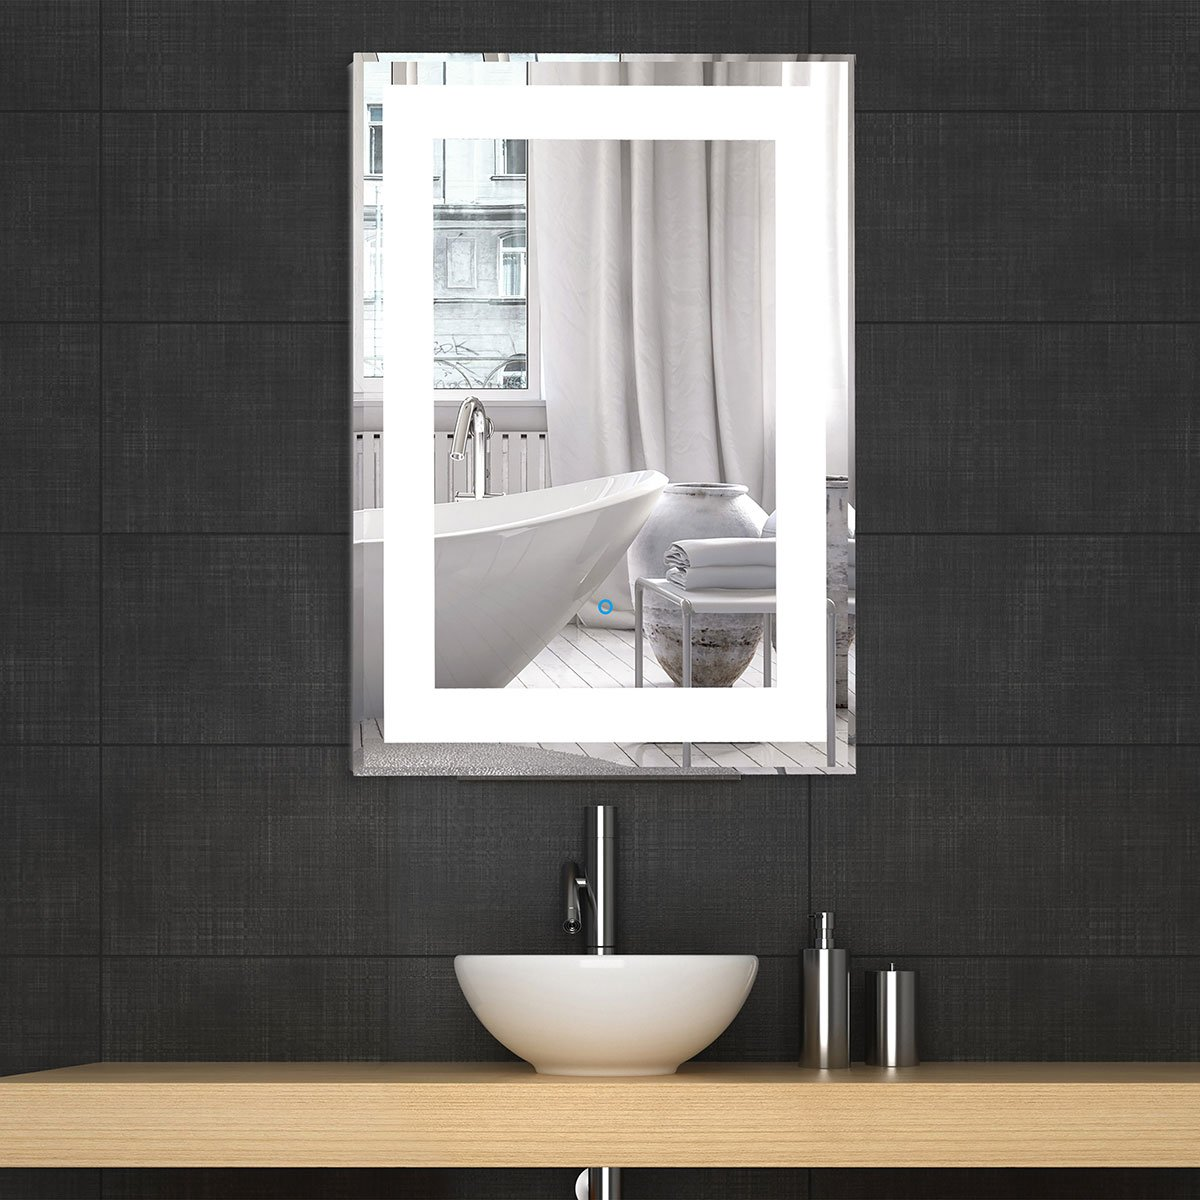 Terrific Best Rated In Bathroom Mirrors Helpful Customer Reviews Download Free Architecture Designs Sospemadebymaigaardcom